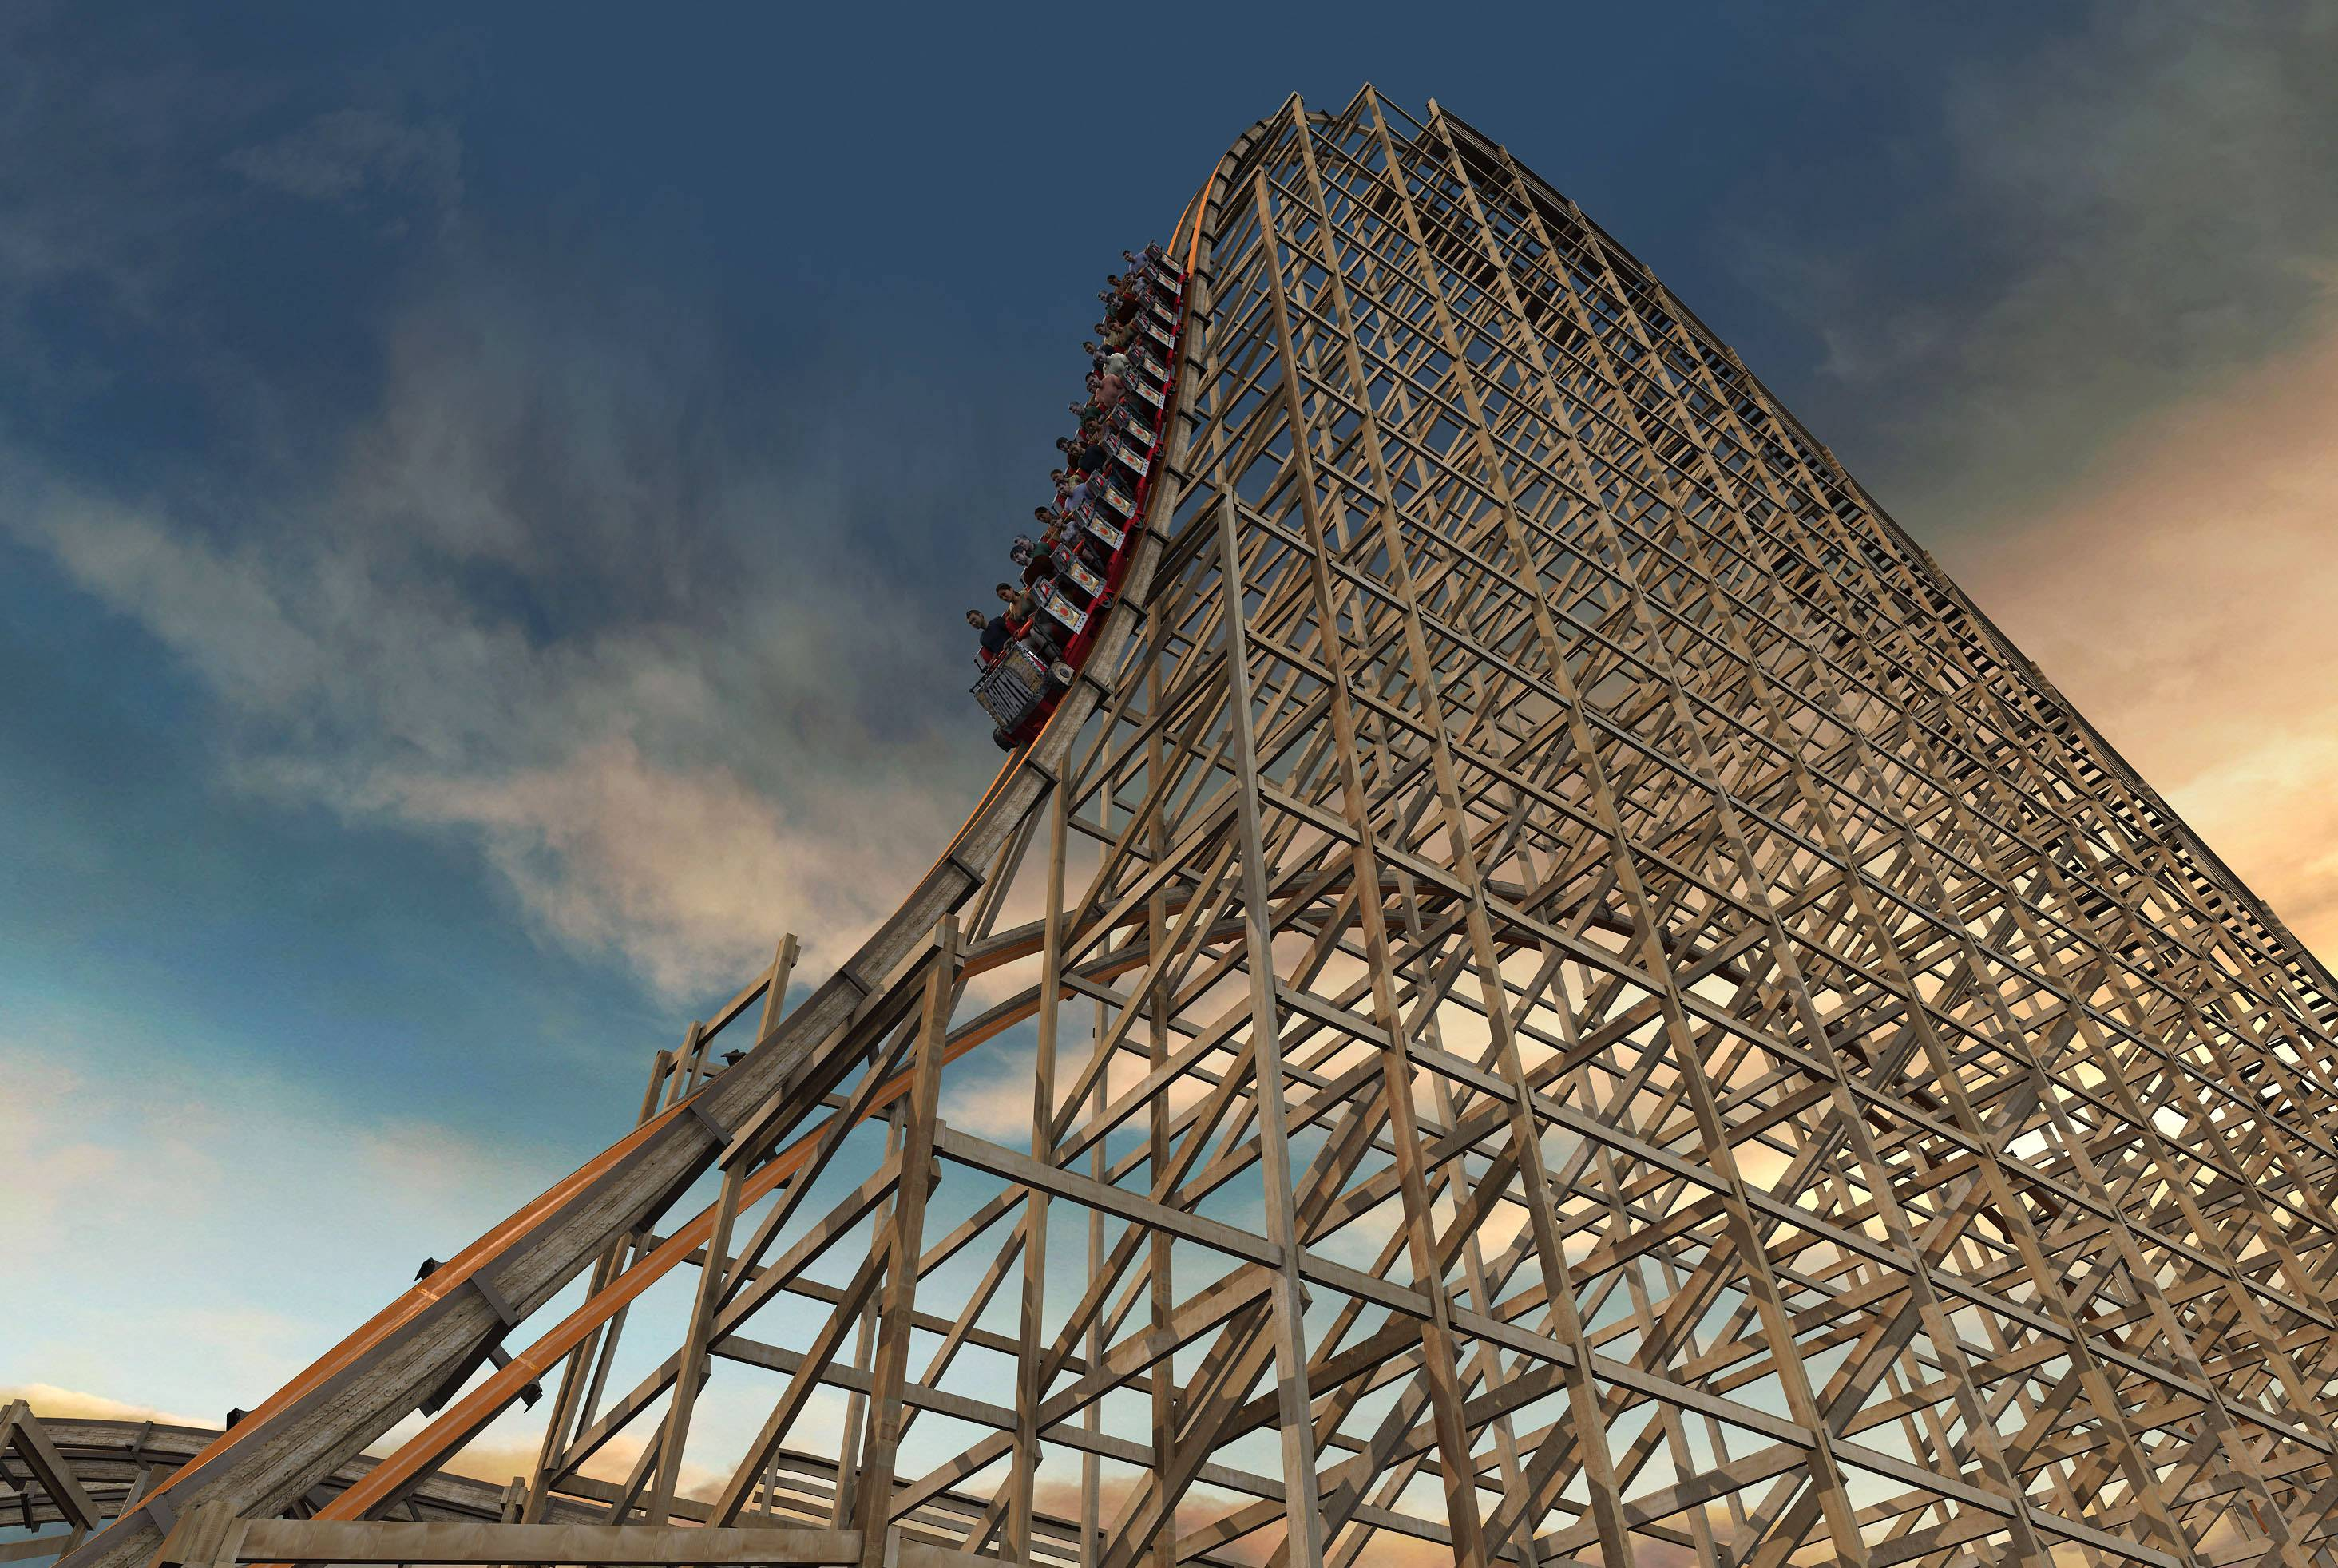 Opening of world's fastest wooden coaster delayed